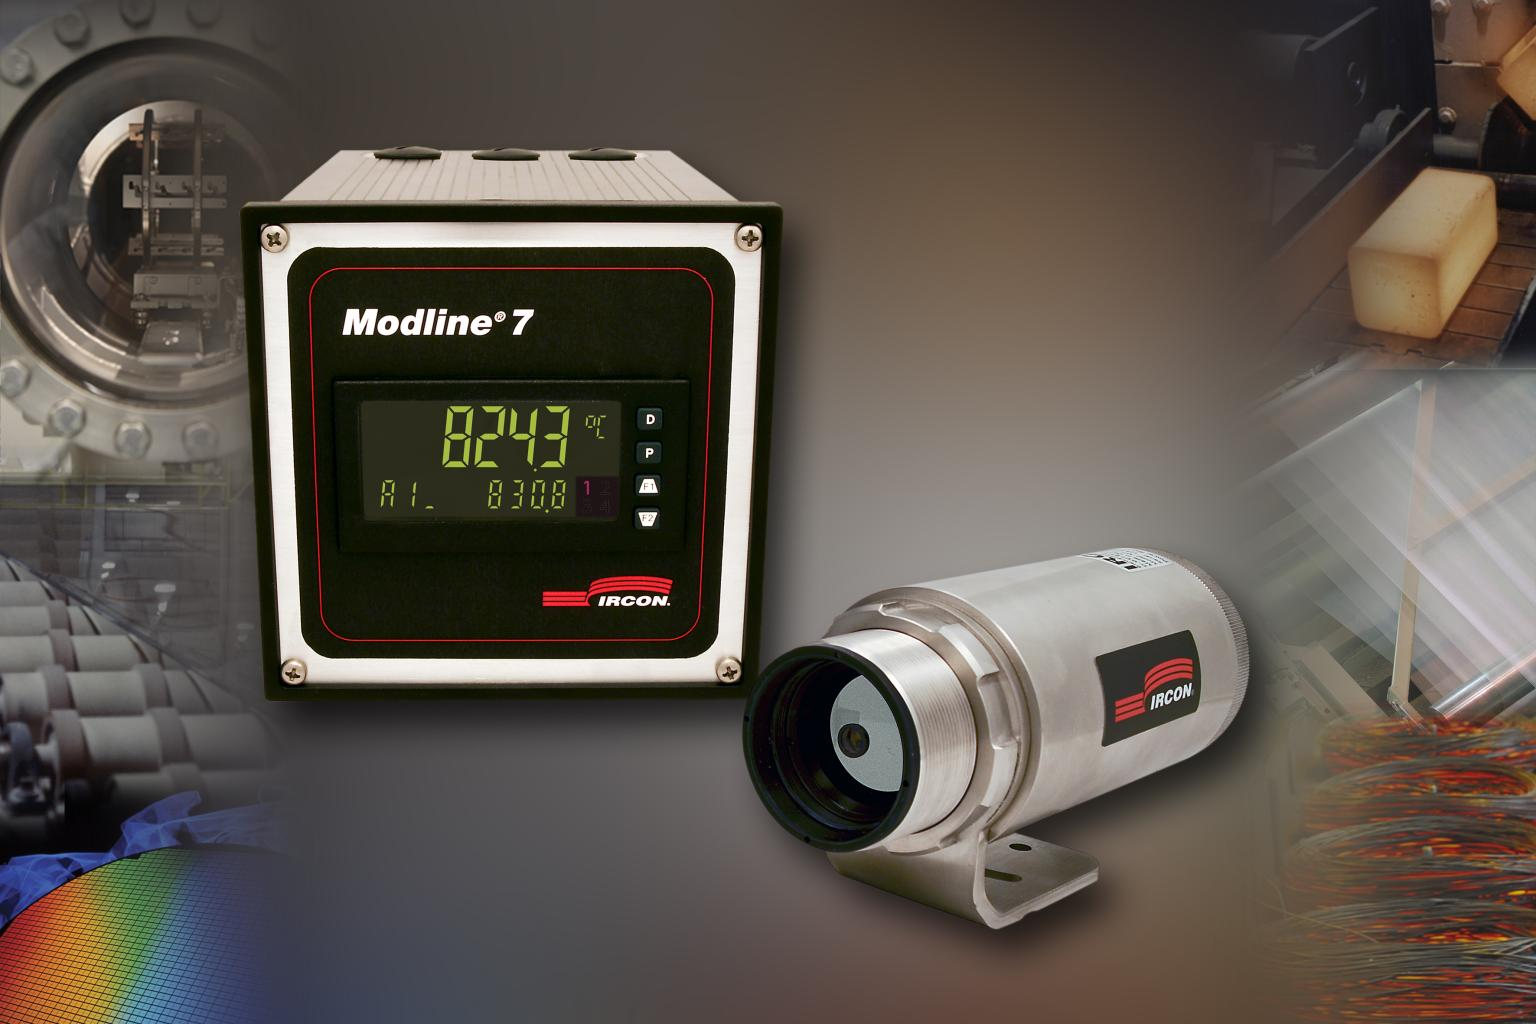 Modline 7 is particularly aimed at demanding industrial environments